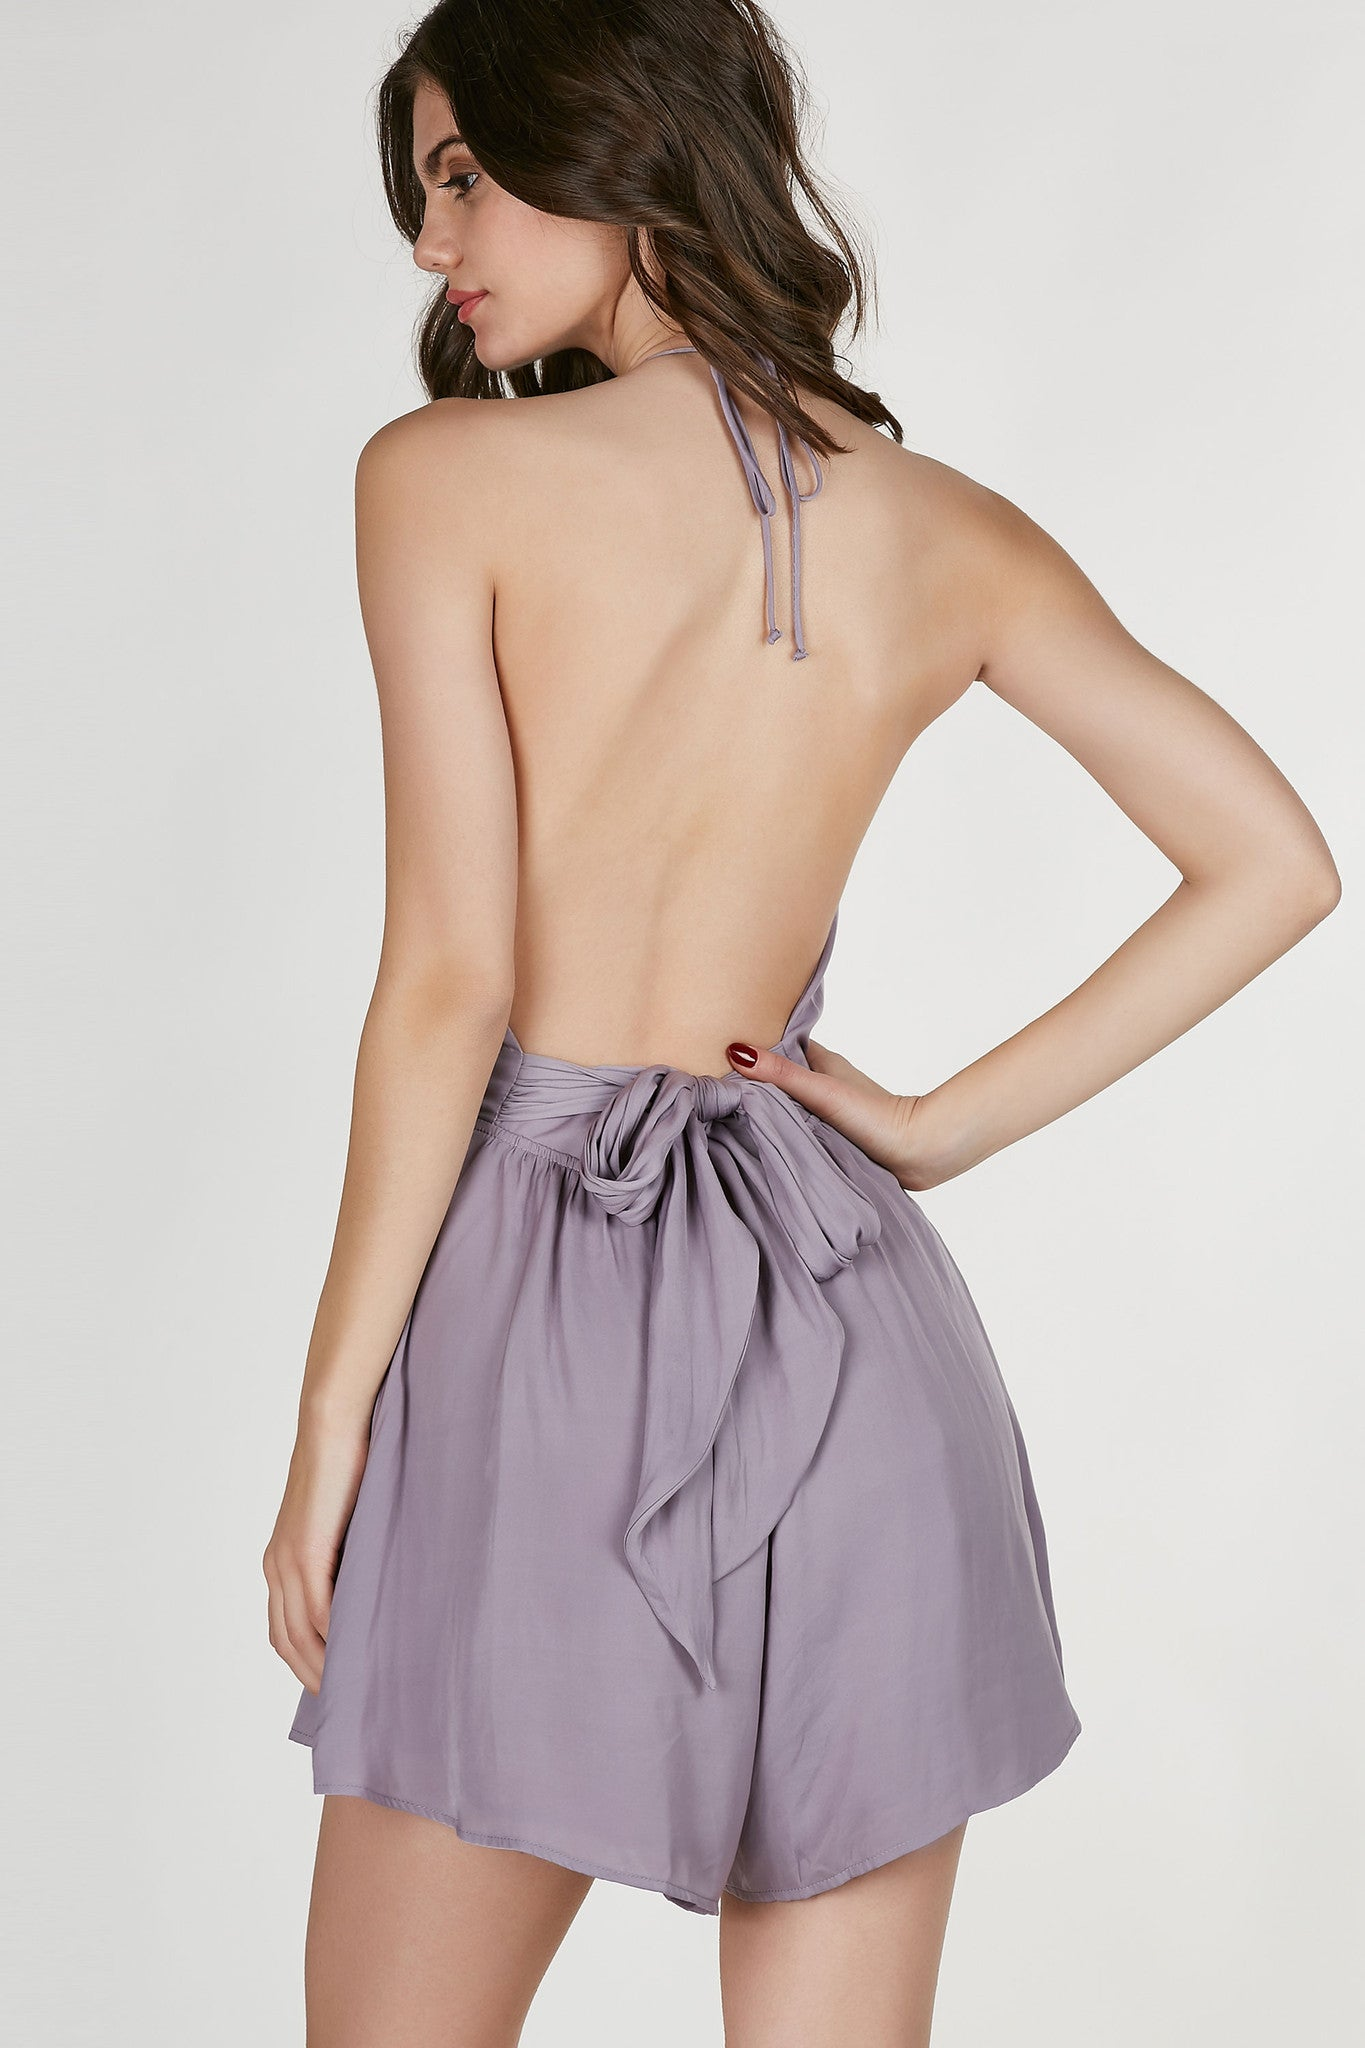 Flowy halter romper with cross over finish at bust. Peek-a-boo design at center with open back and tie at wasit.